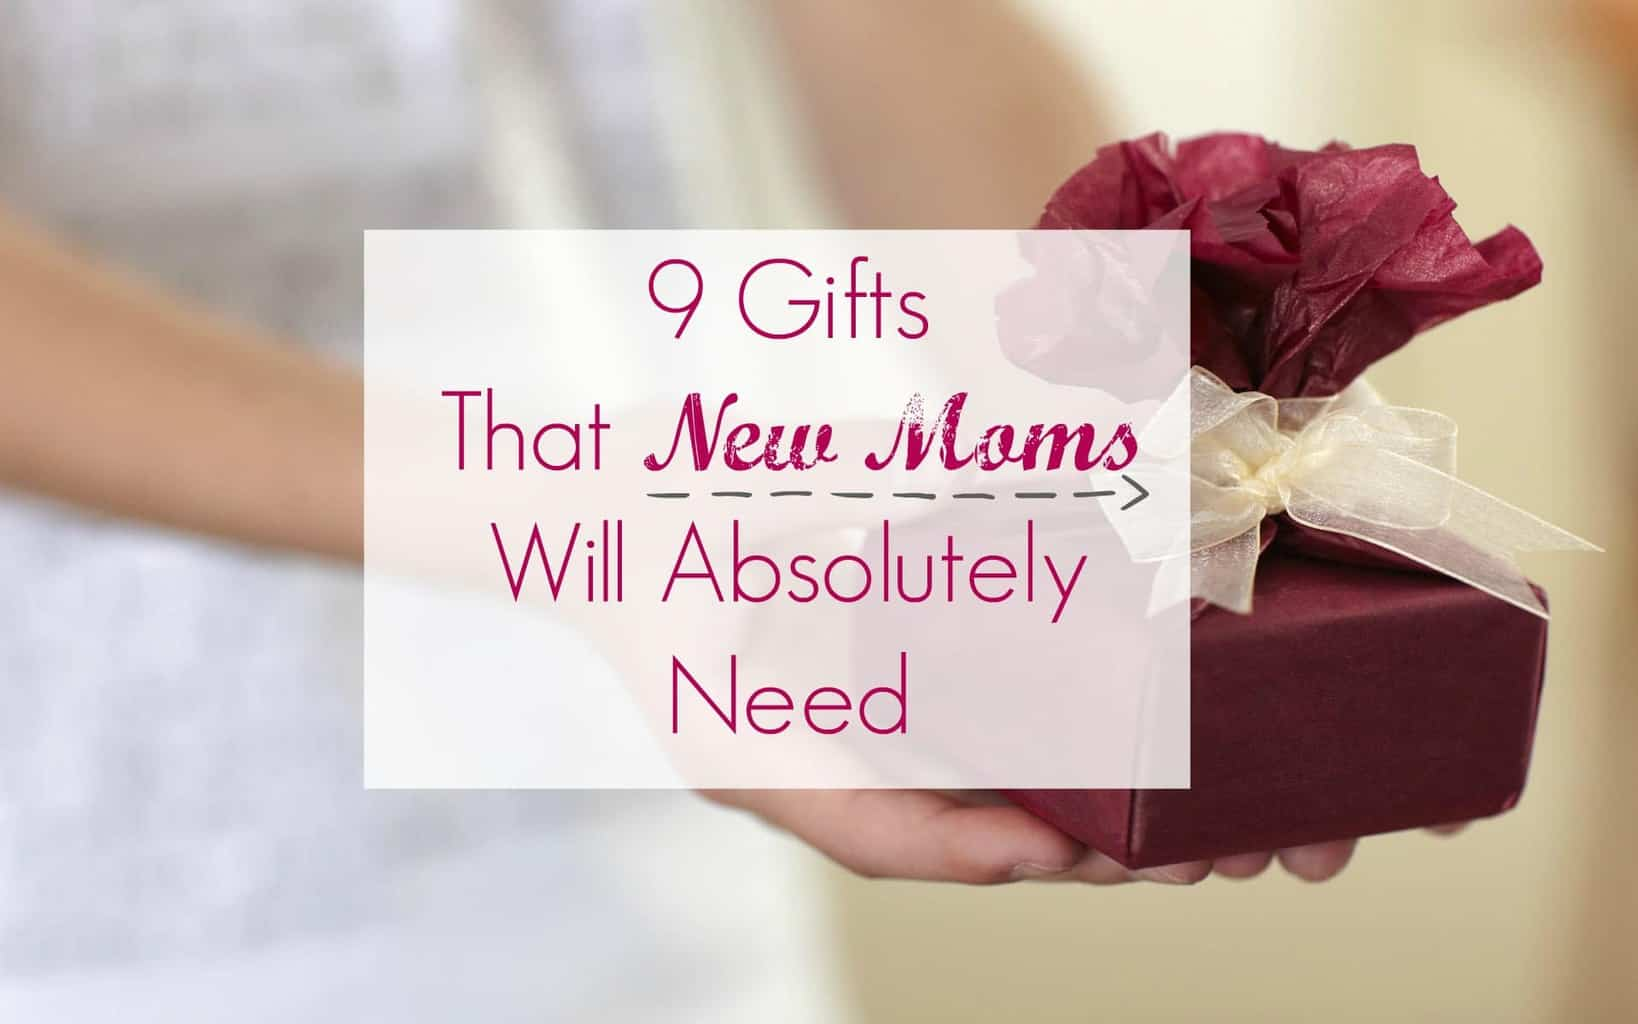 Finding the best gifts for new moms from husband can be quite a task. Luckily, the market offers a great variety of gifts that won't empty out your bank account.